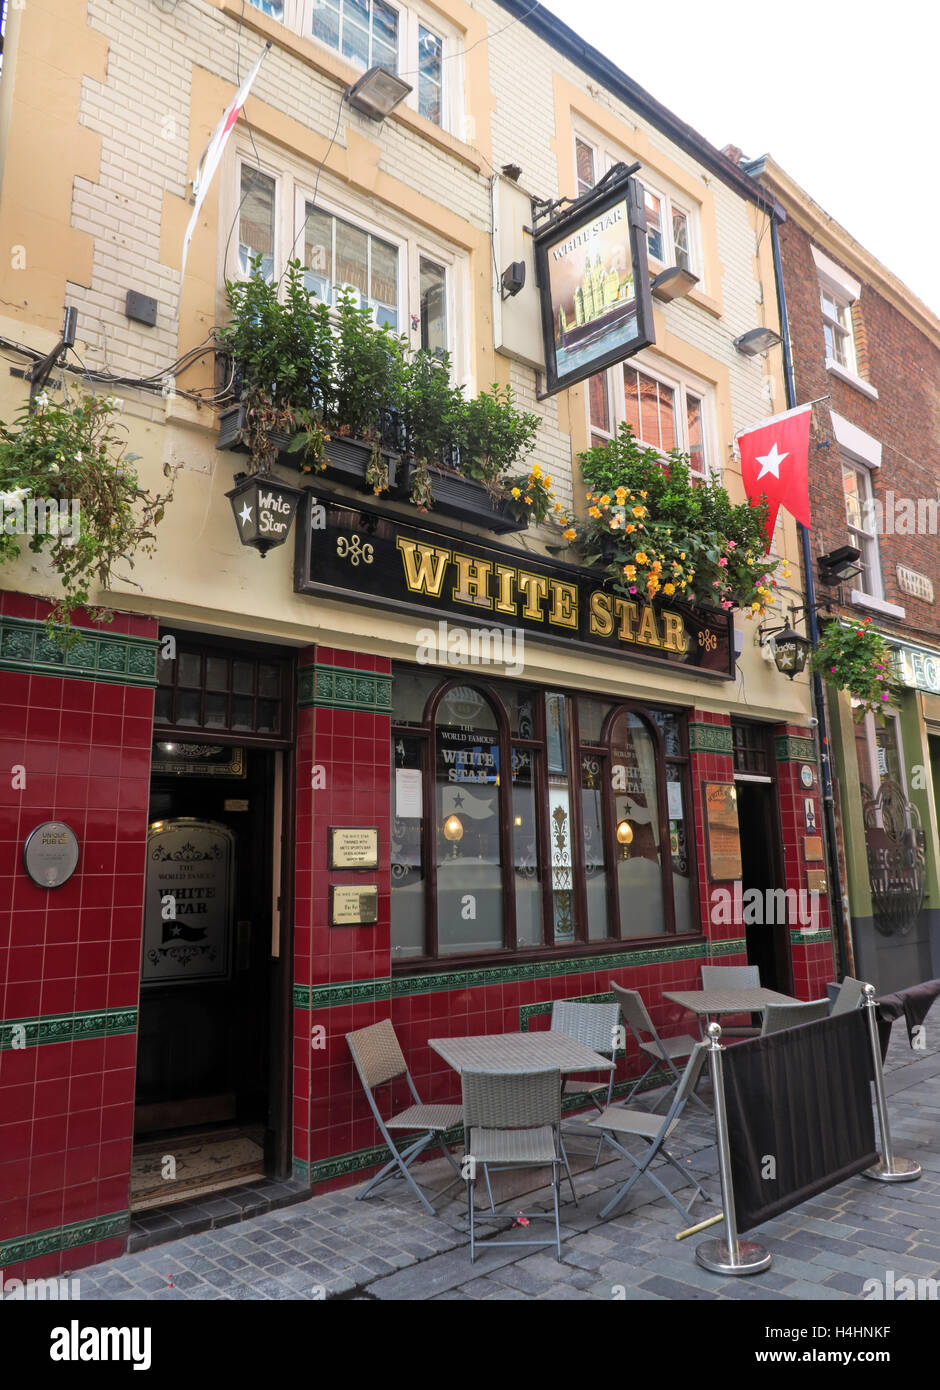 White Star Pub,2-4 Rainford Gardens, City Centre, Liverpool L2 6PT - Stock Image